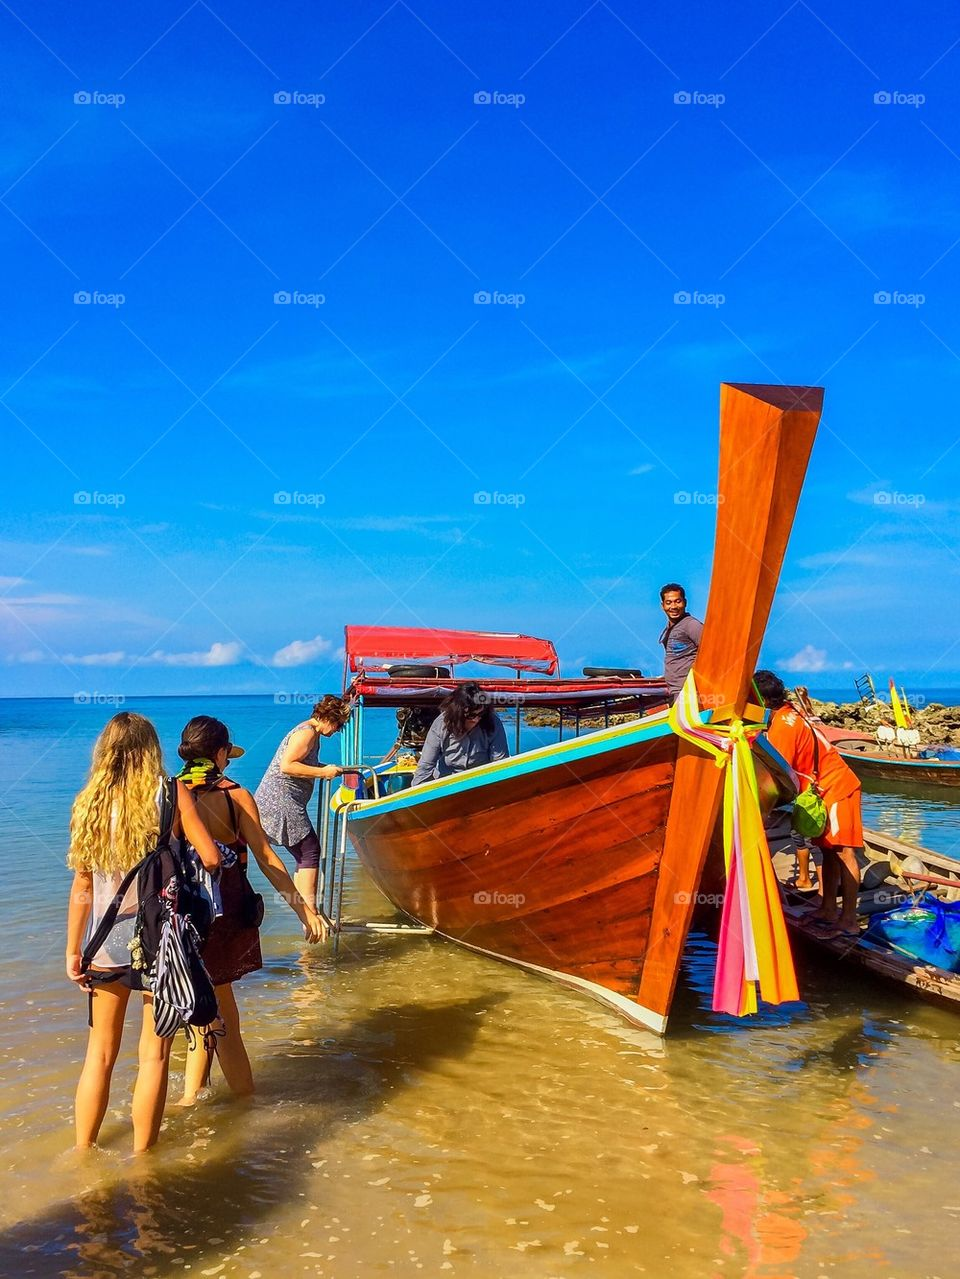 Trip in Thailand   image, ocean, travel, boats